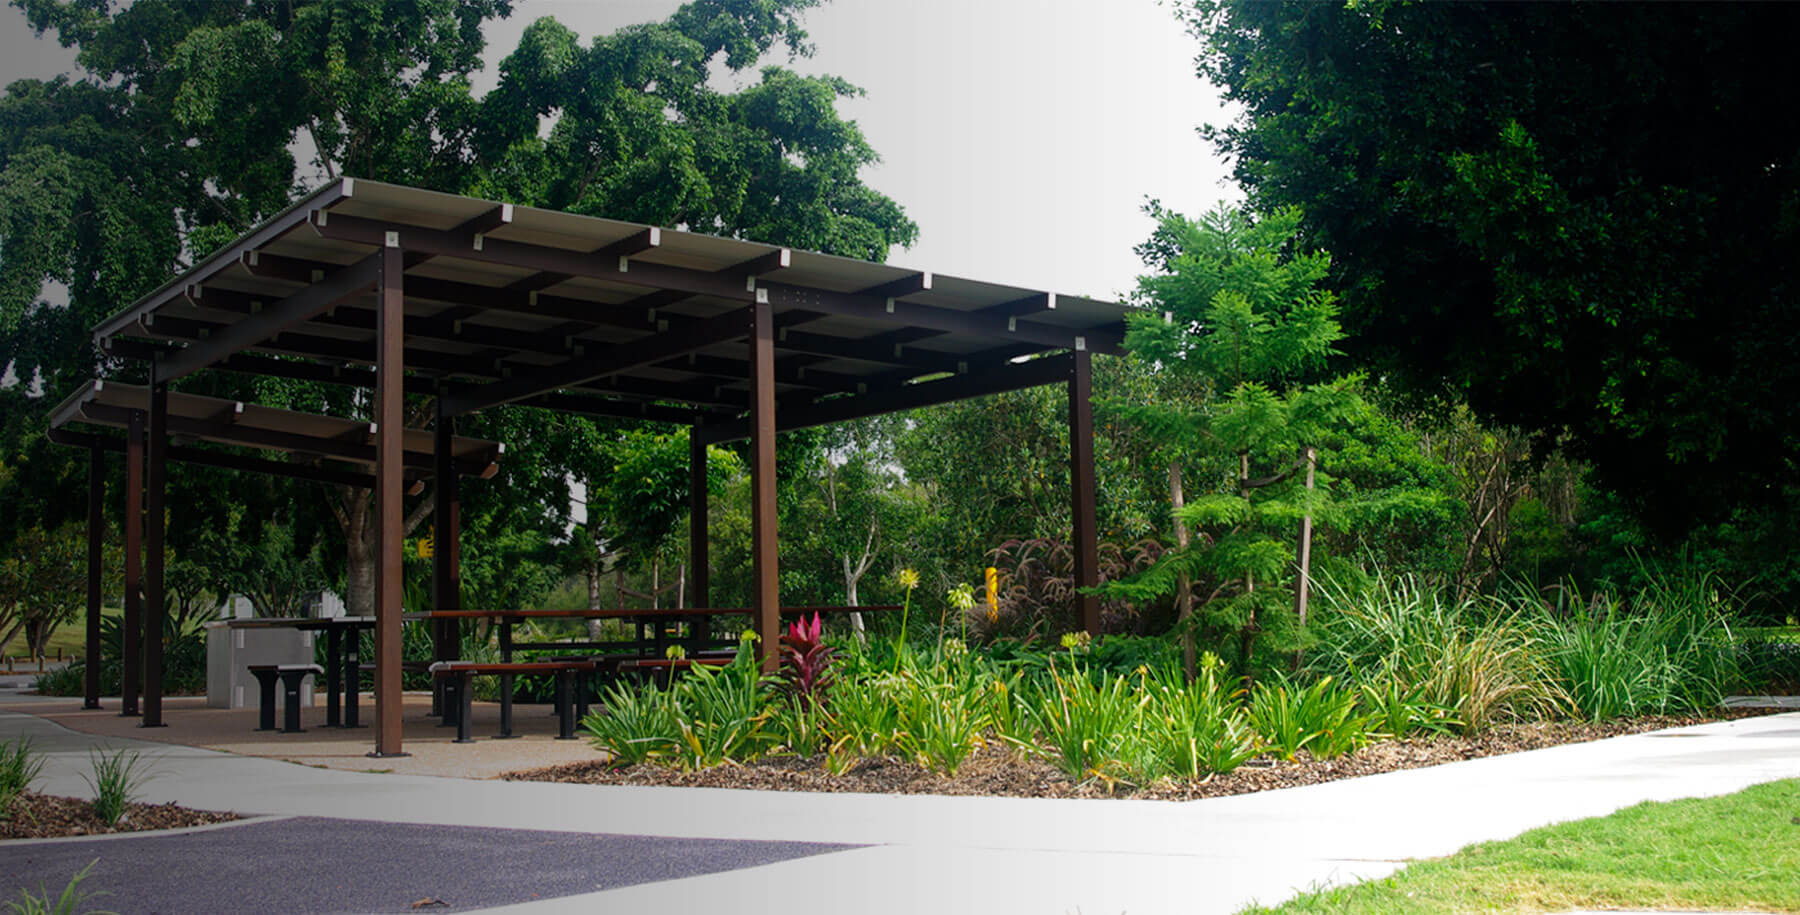 Shelters- Gossi Park and Street Furniture